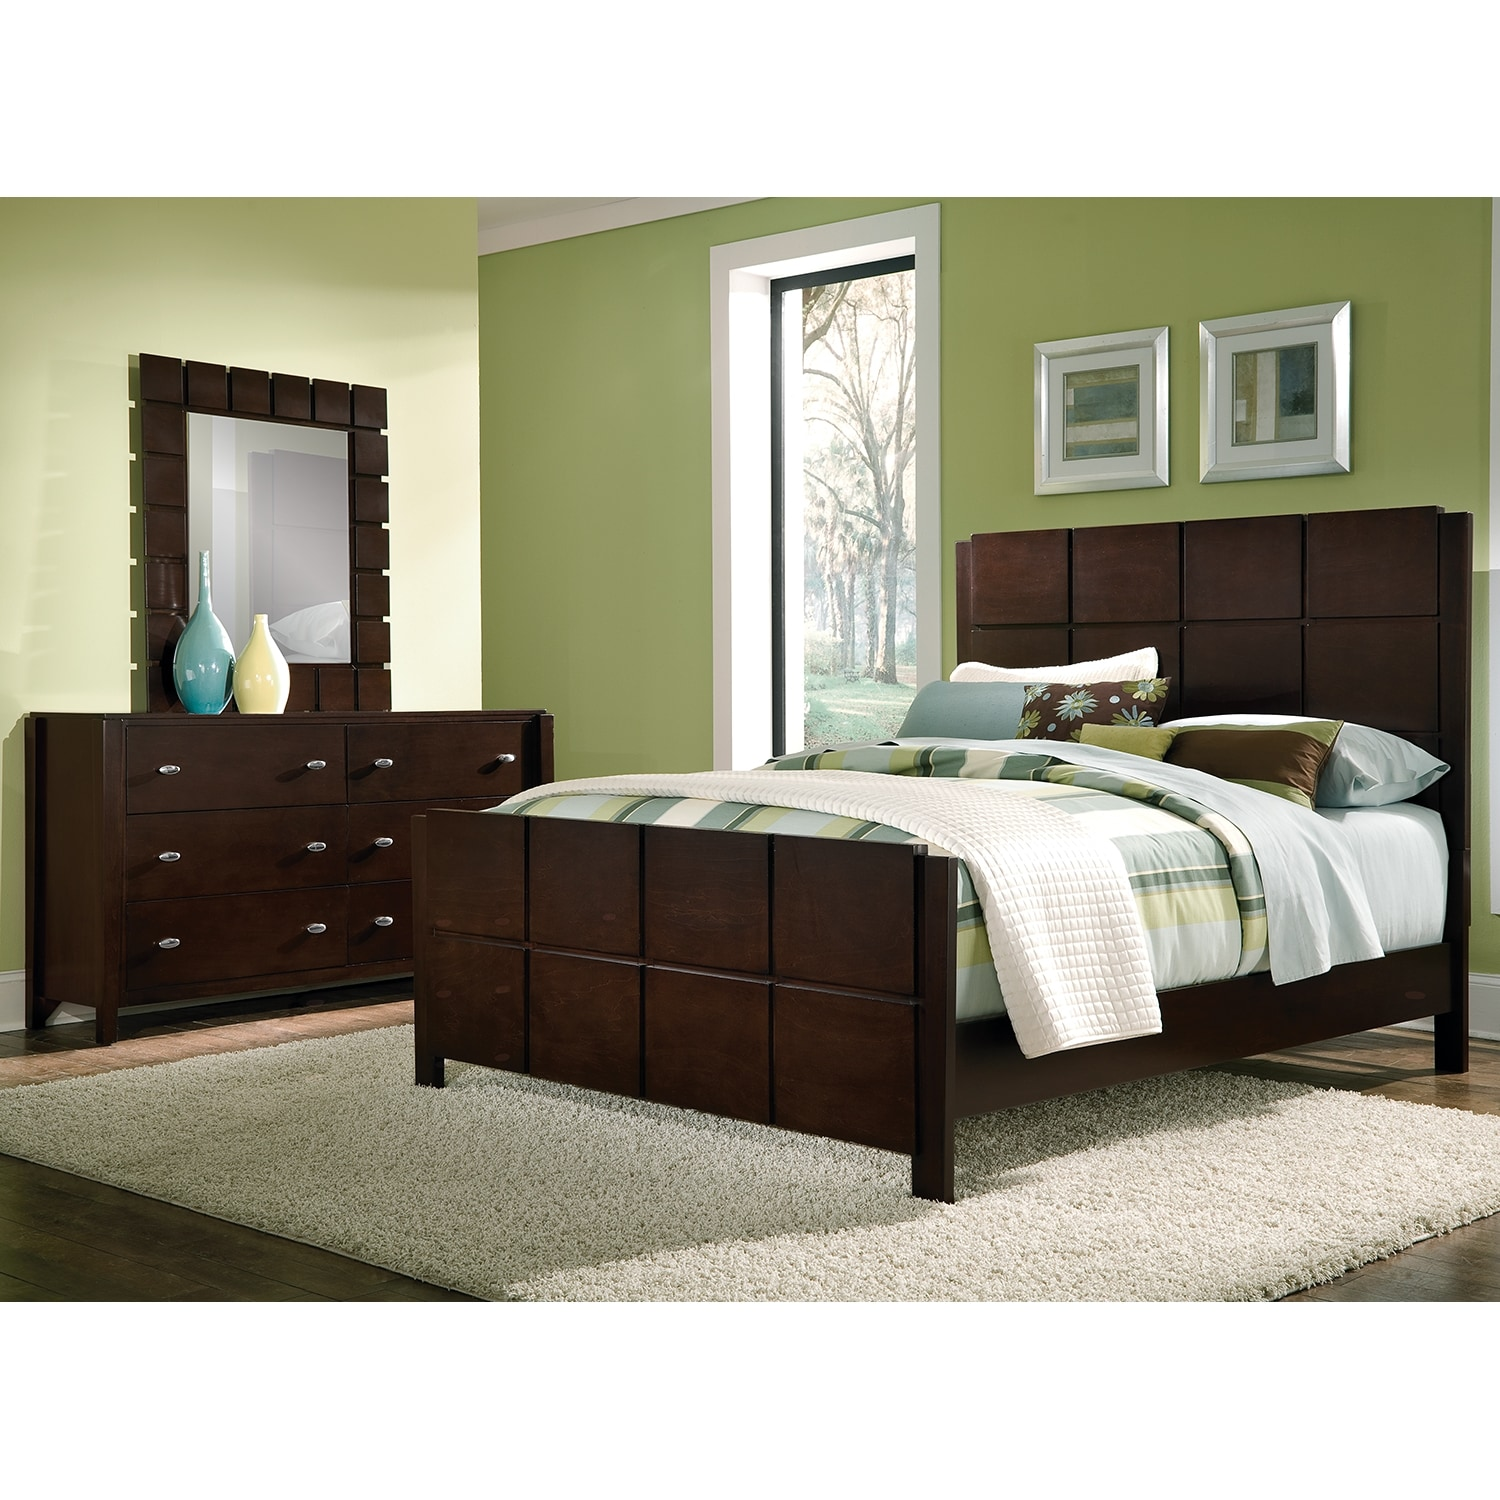 mosaic 5 piece king bedroom set dark brown bedroom furniture photo